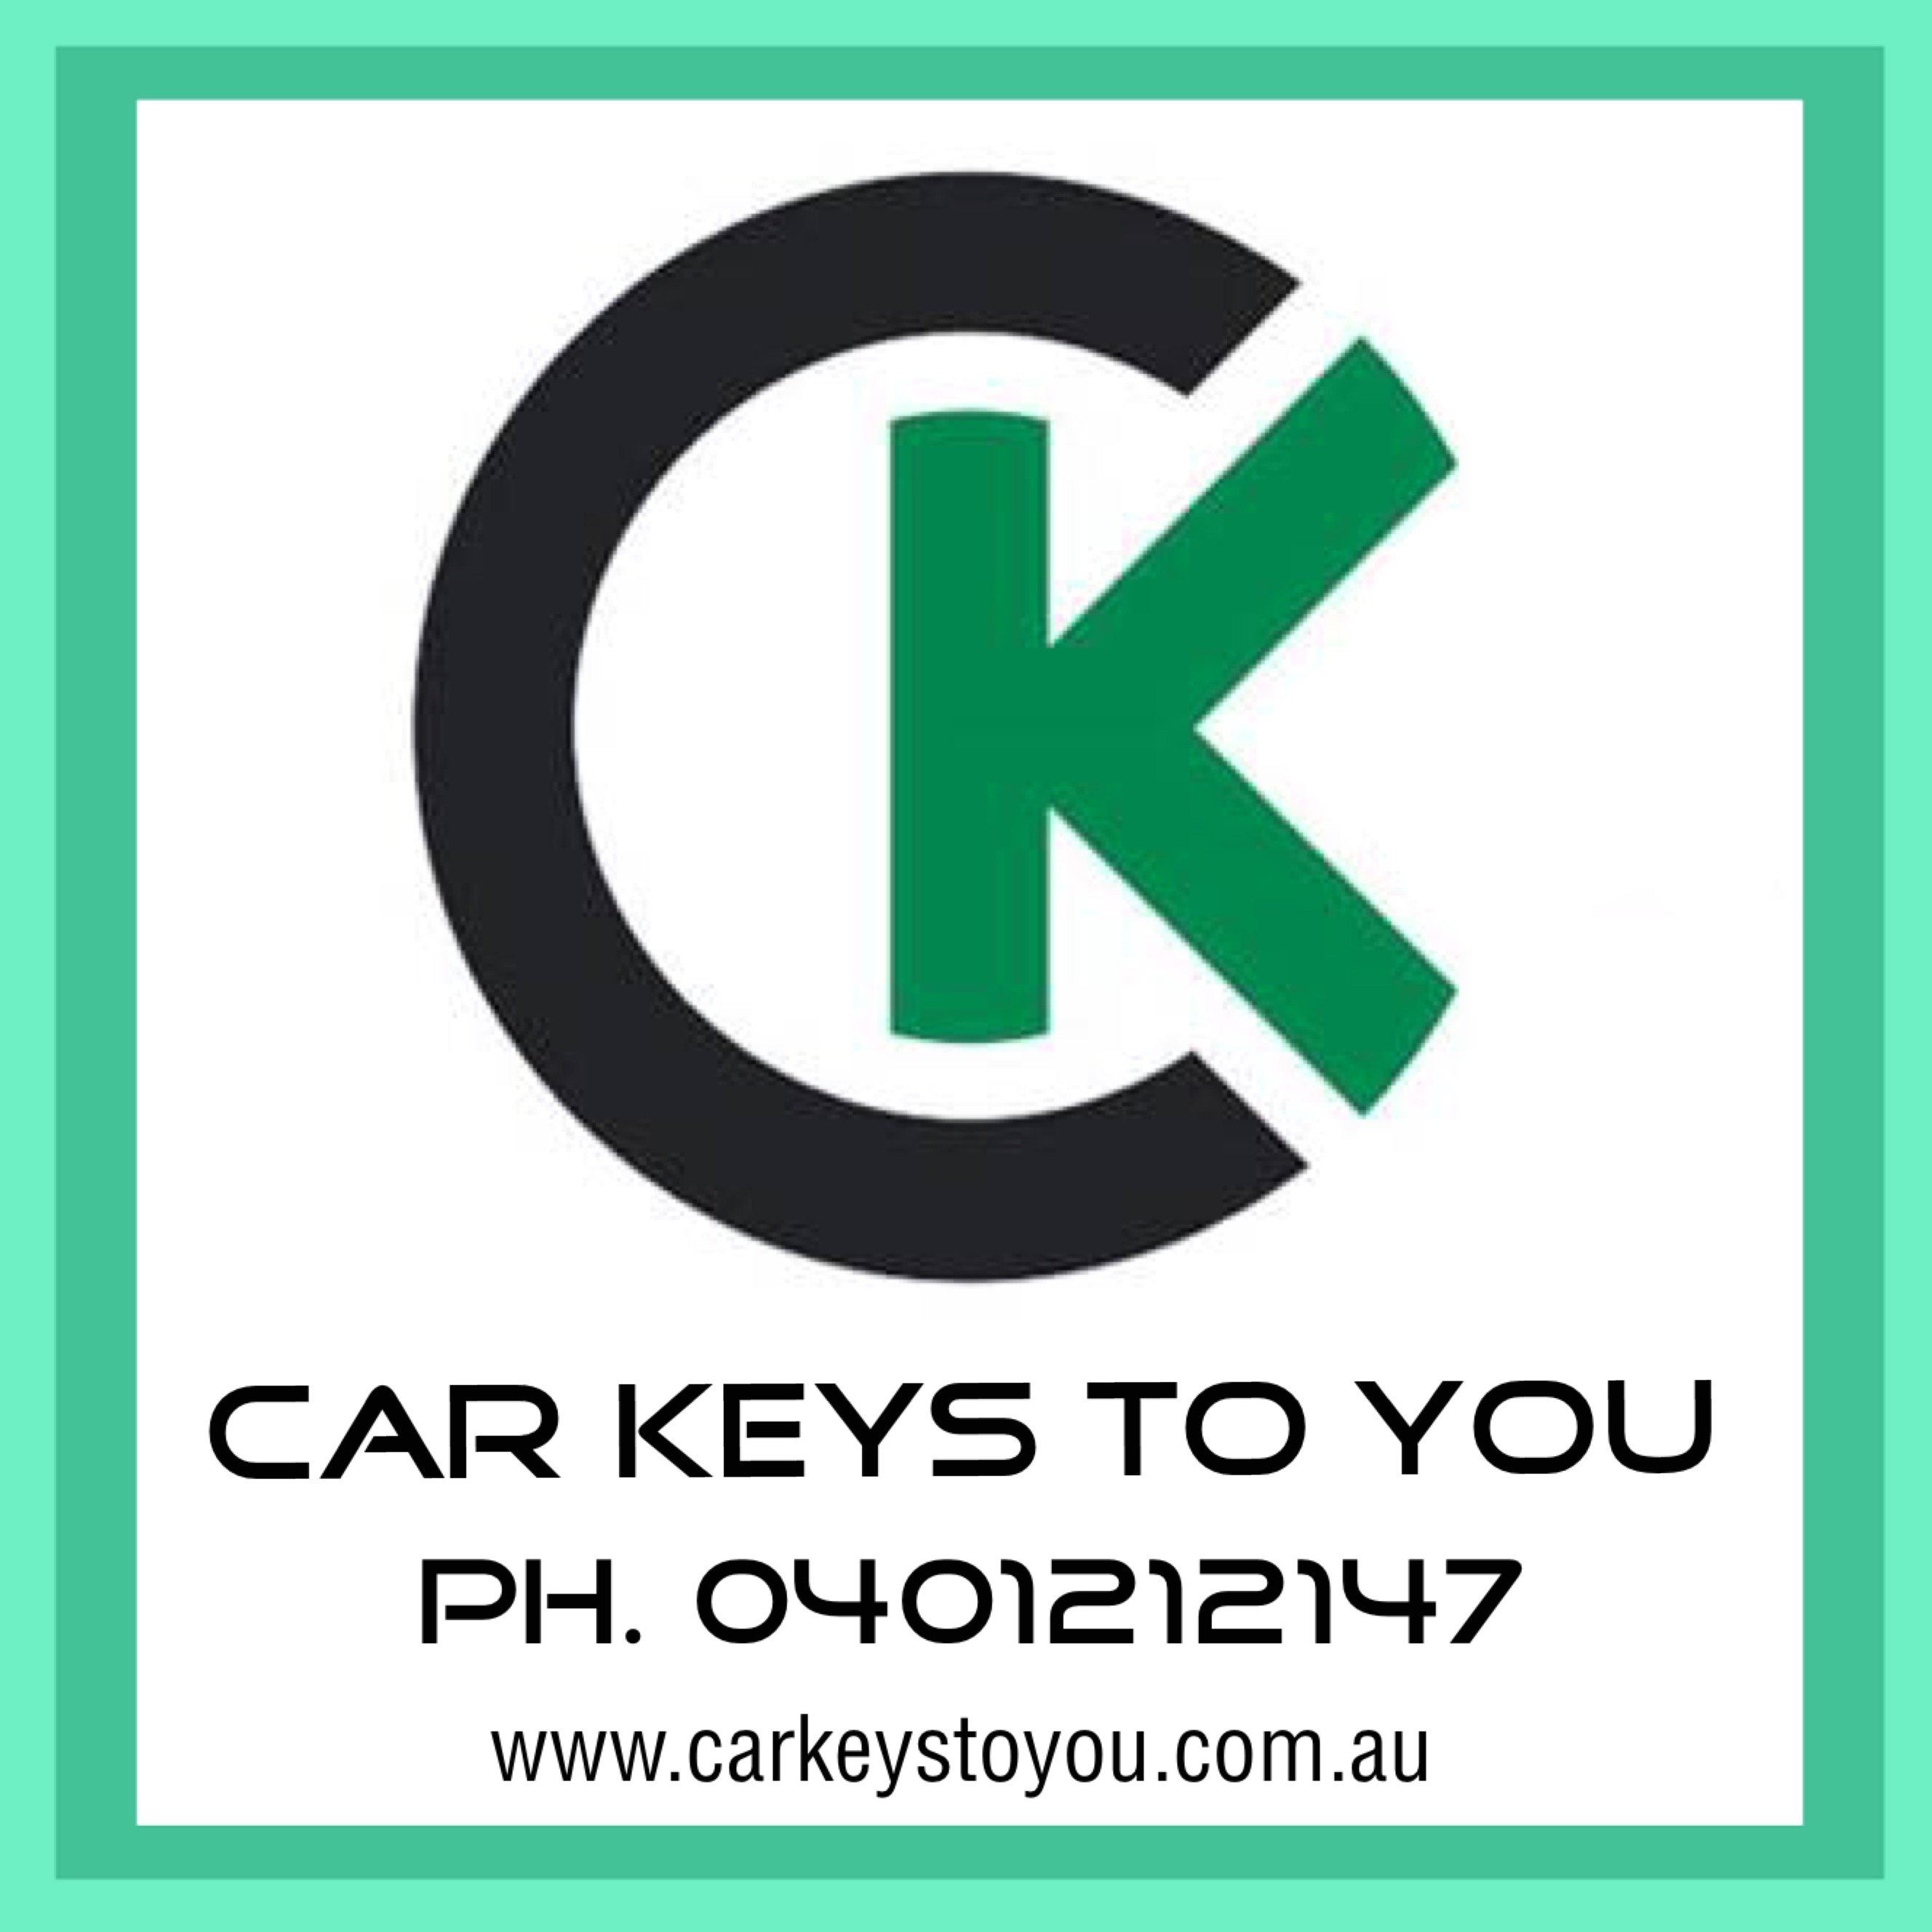 South East Queensland - Car Keys To You. Call Us